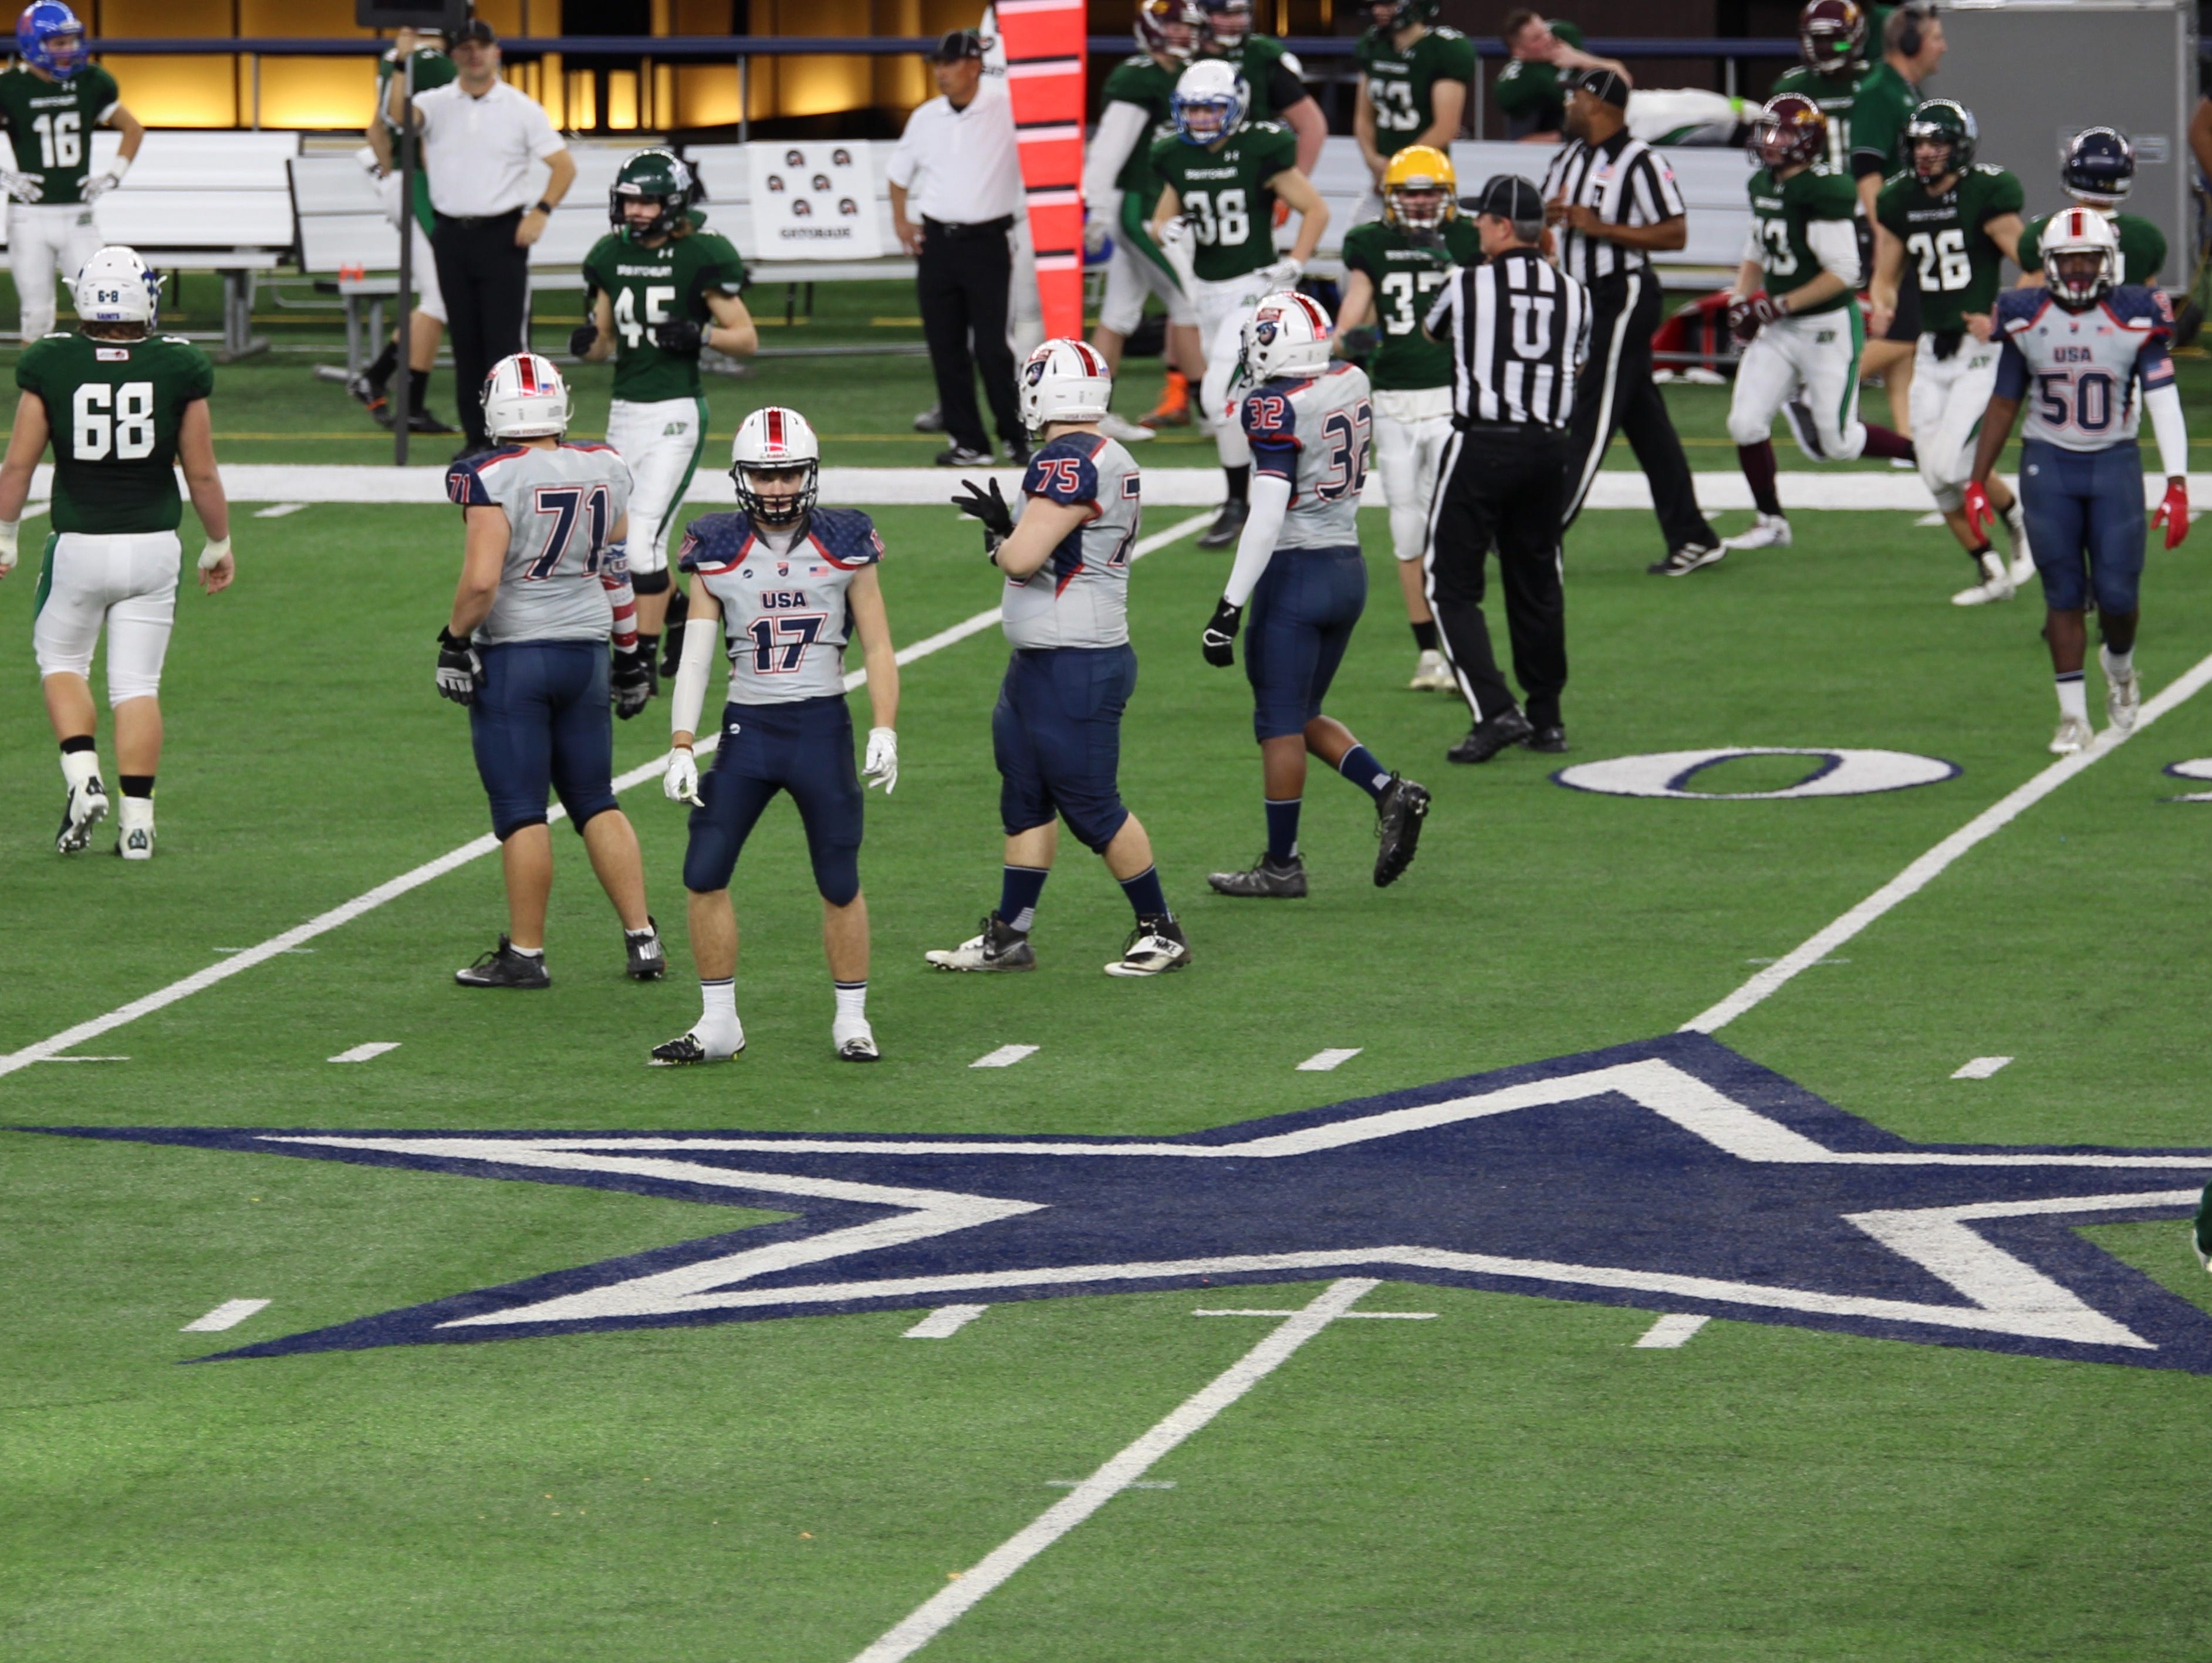 DeSales sophomore Cameron Perry (No. 17) suited up for the U.S. Under-17 Select Team at the International Bowl on Monday January 16 at AT&T Stadium in Arlington, Texas